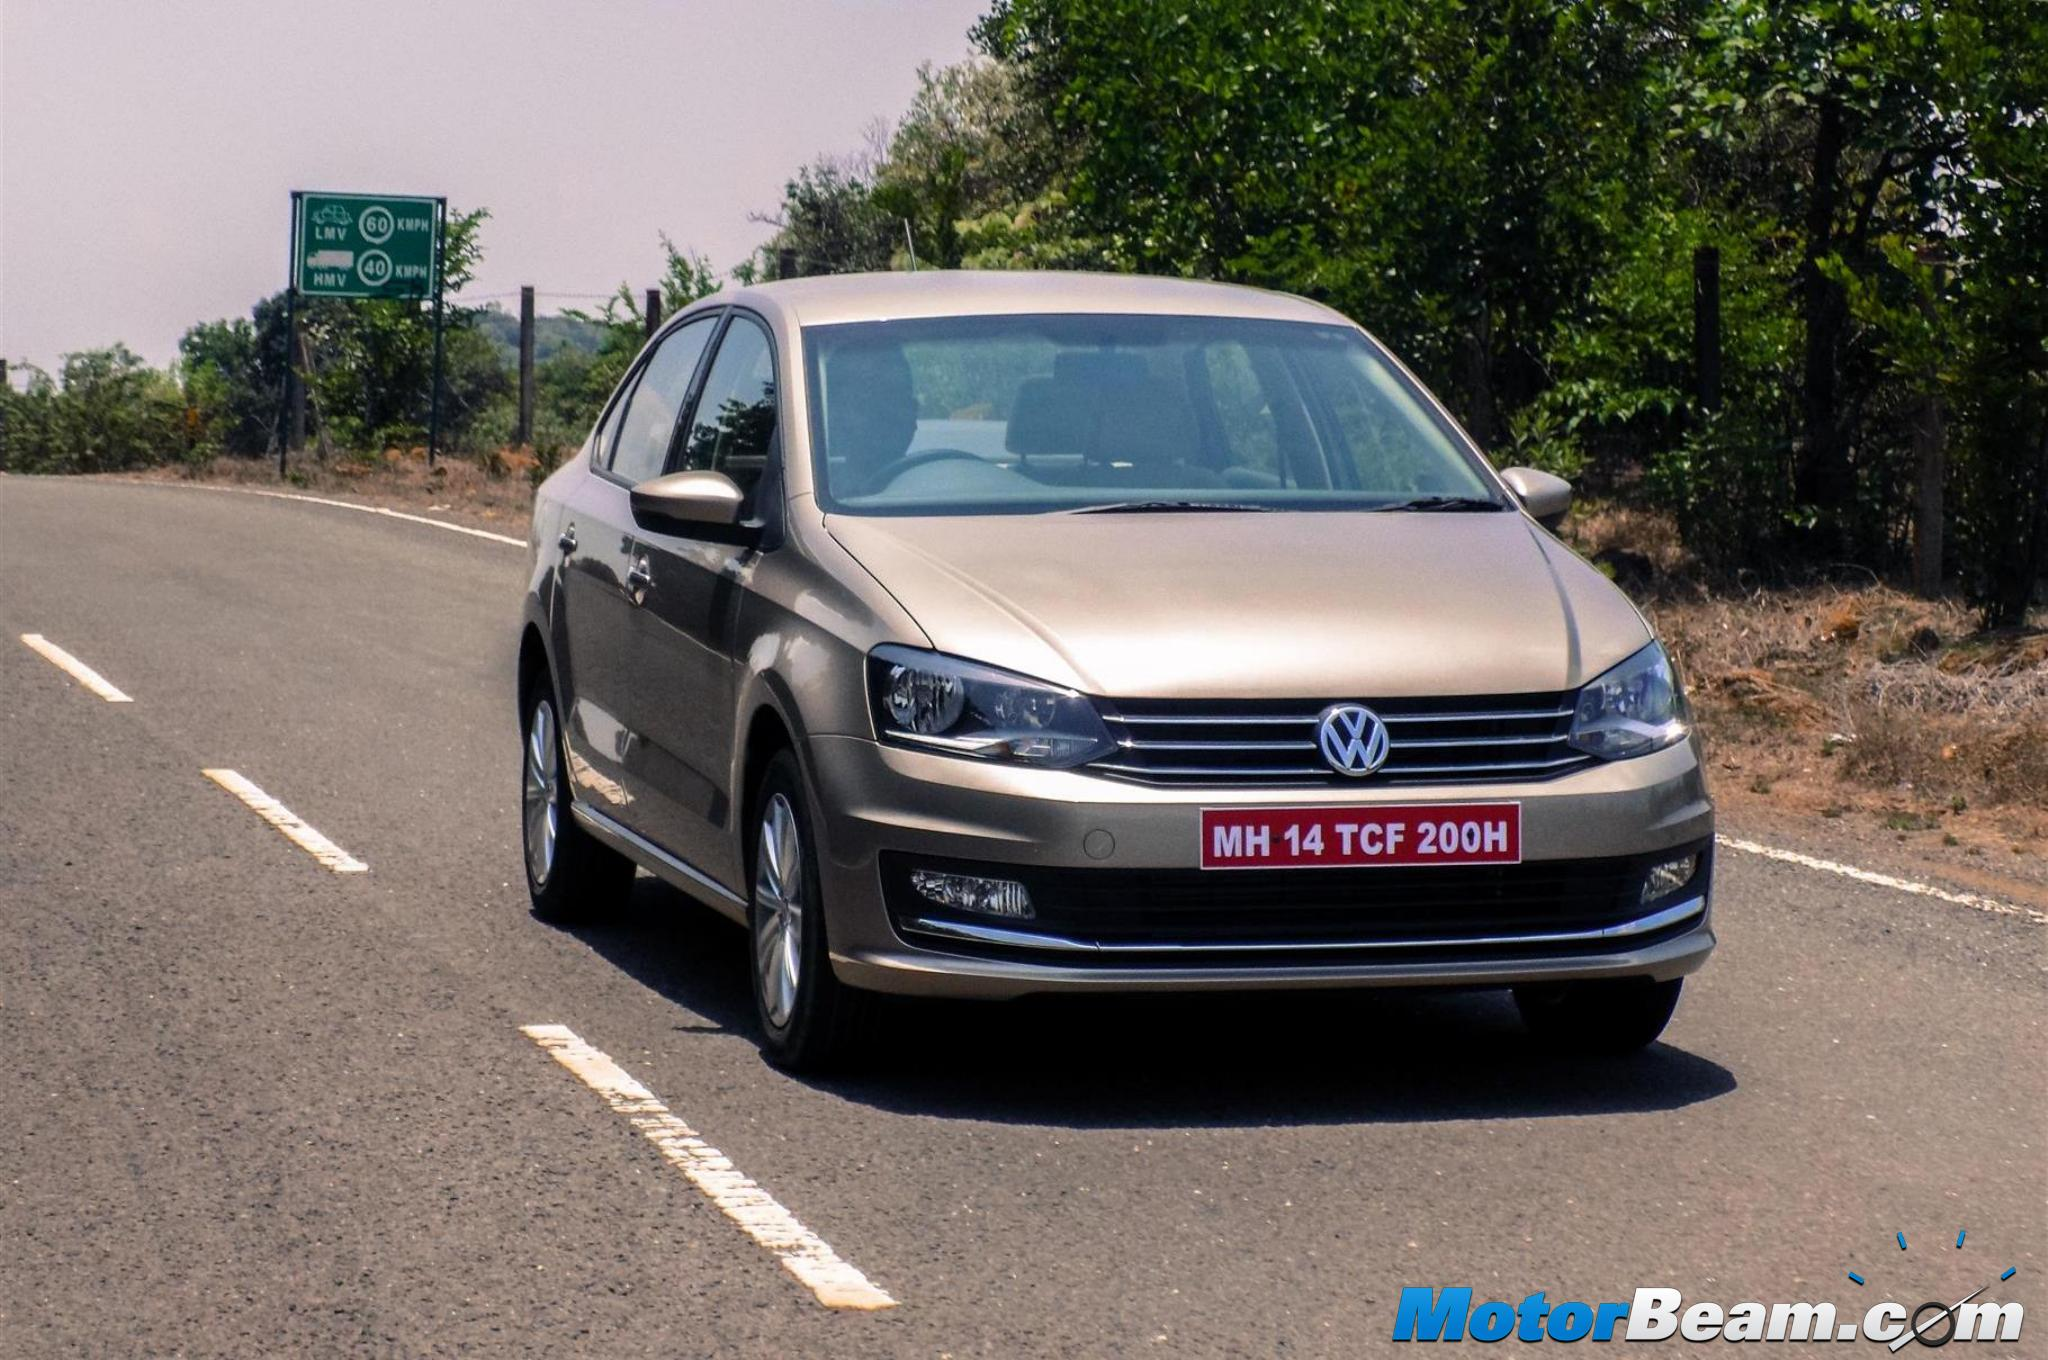 2015 Volkswagen Vento Facelift Review